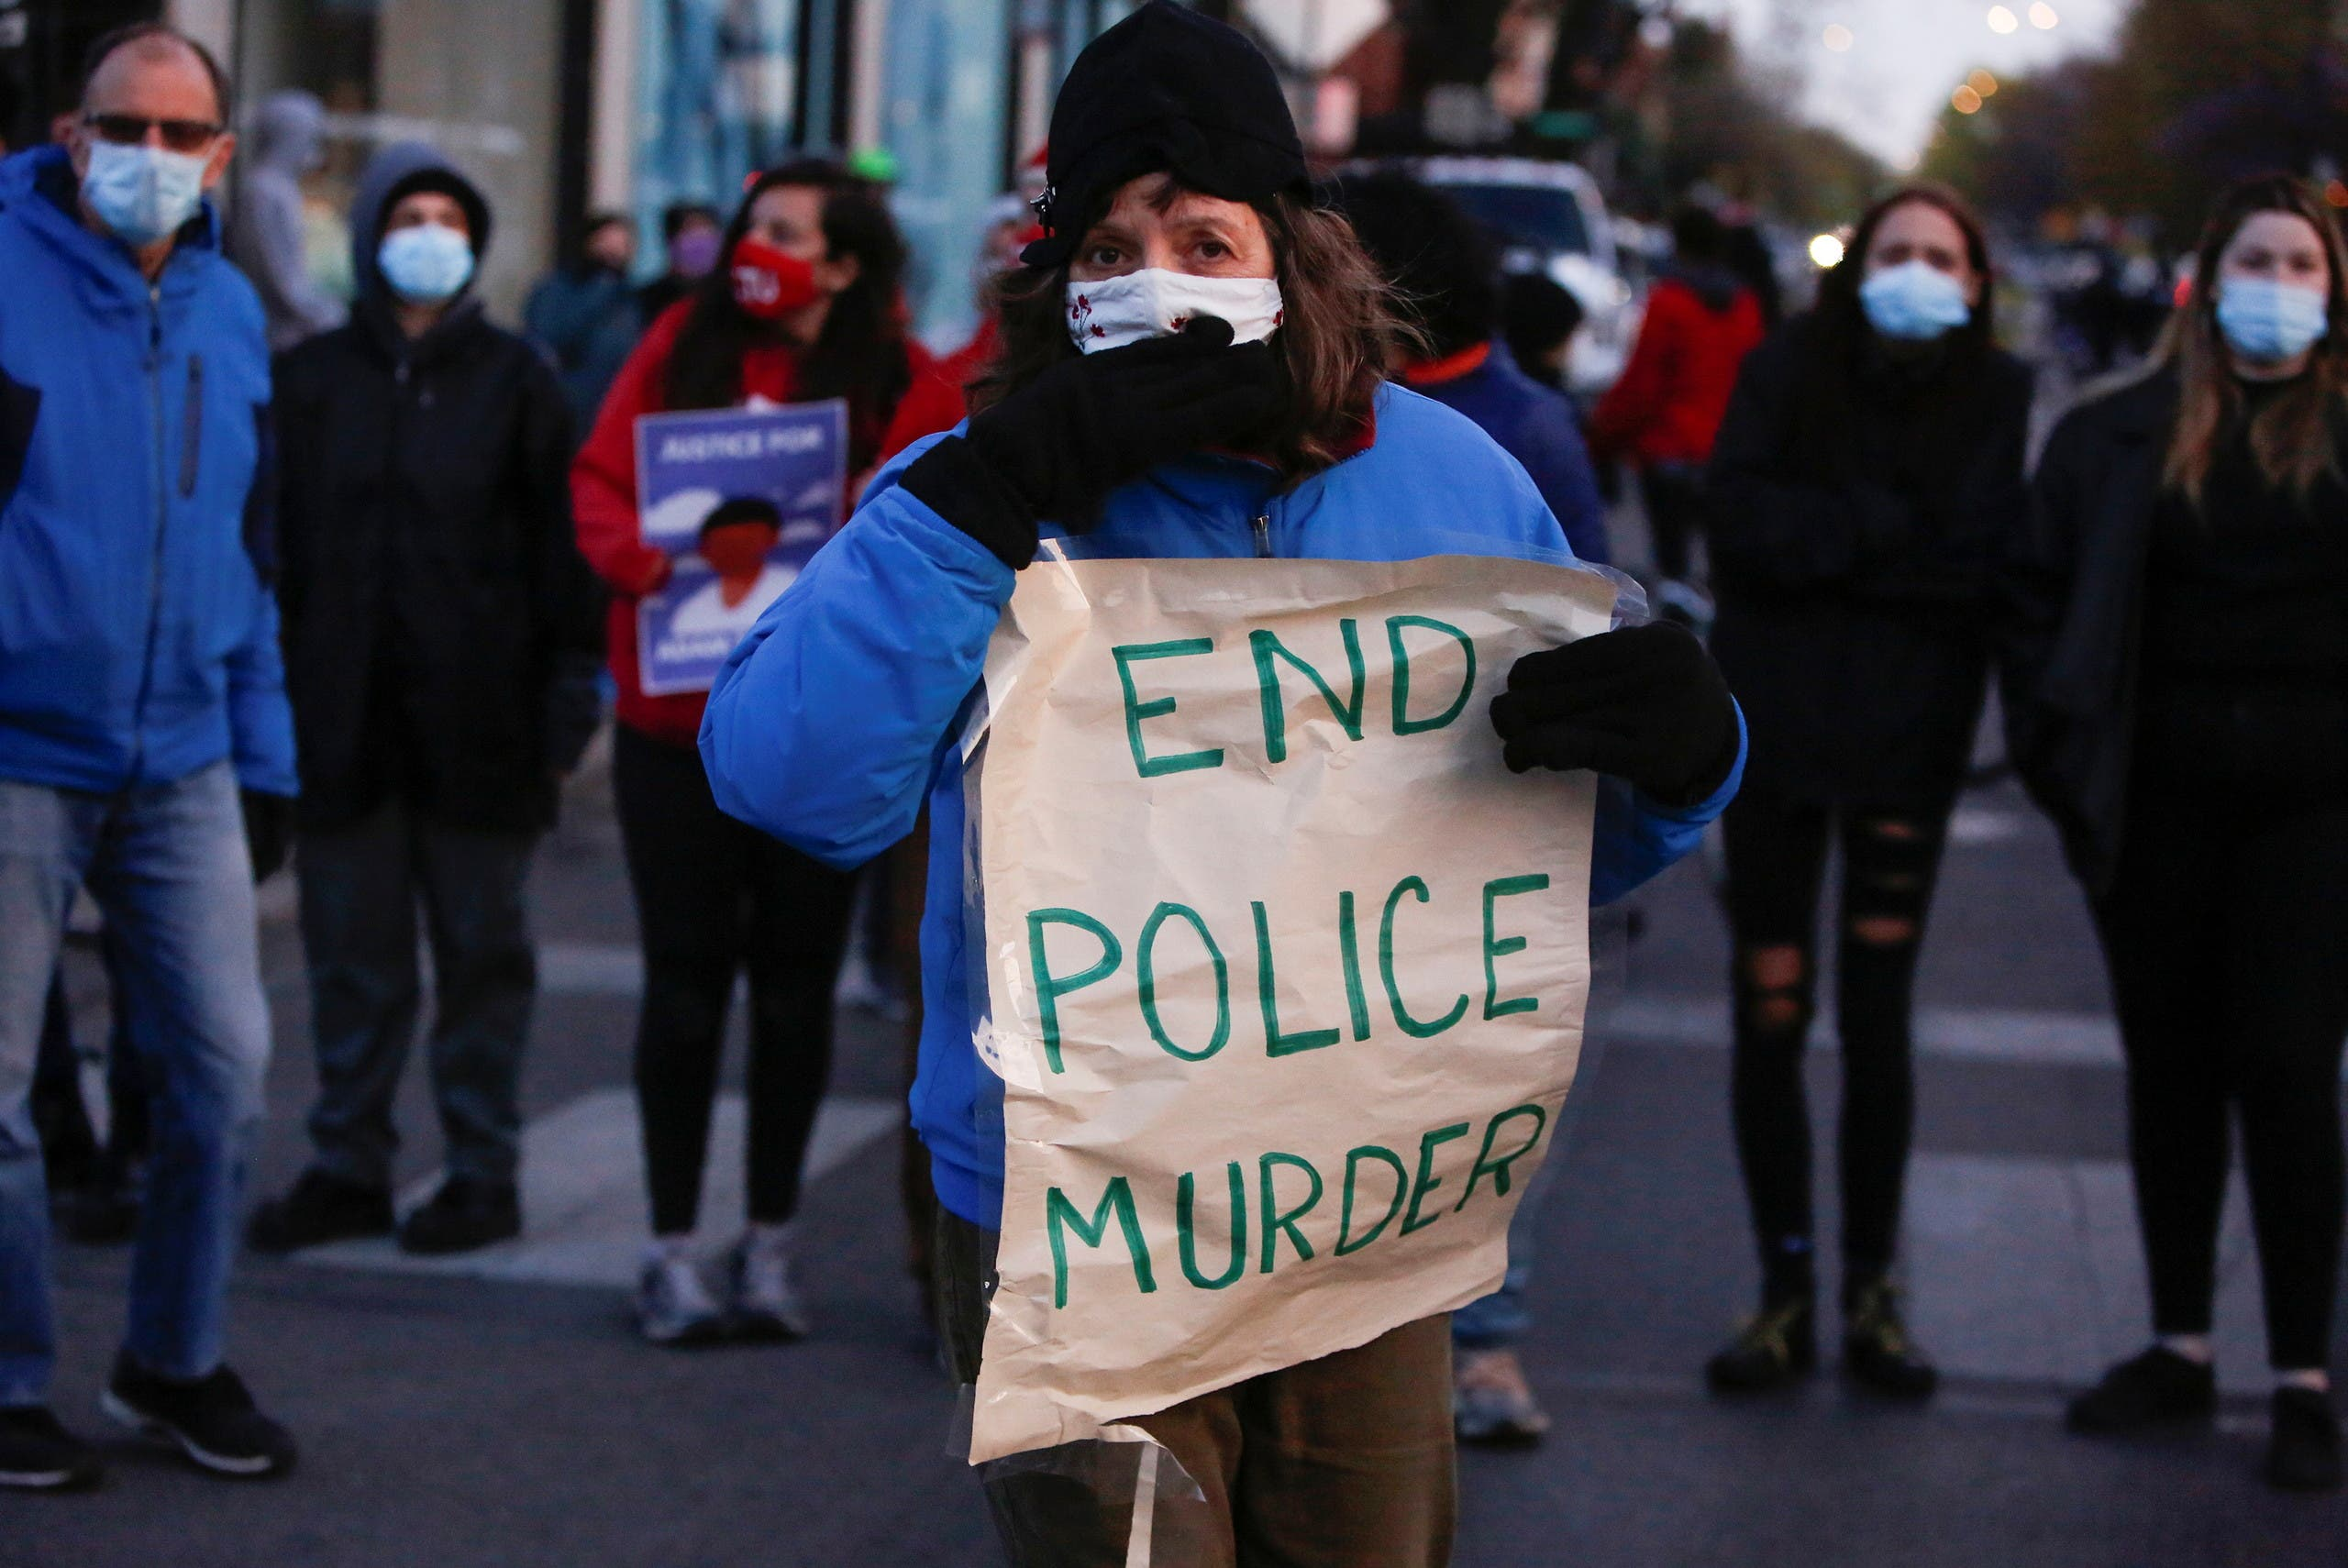 Protest in the aftermath of the death of 13-year-old-boy Adam Toledo, in Chicago. (Reuters)